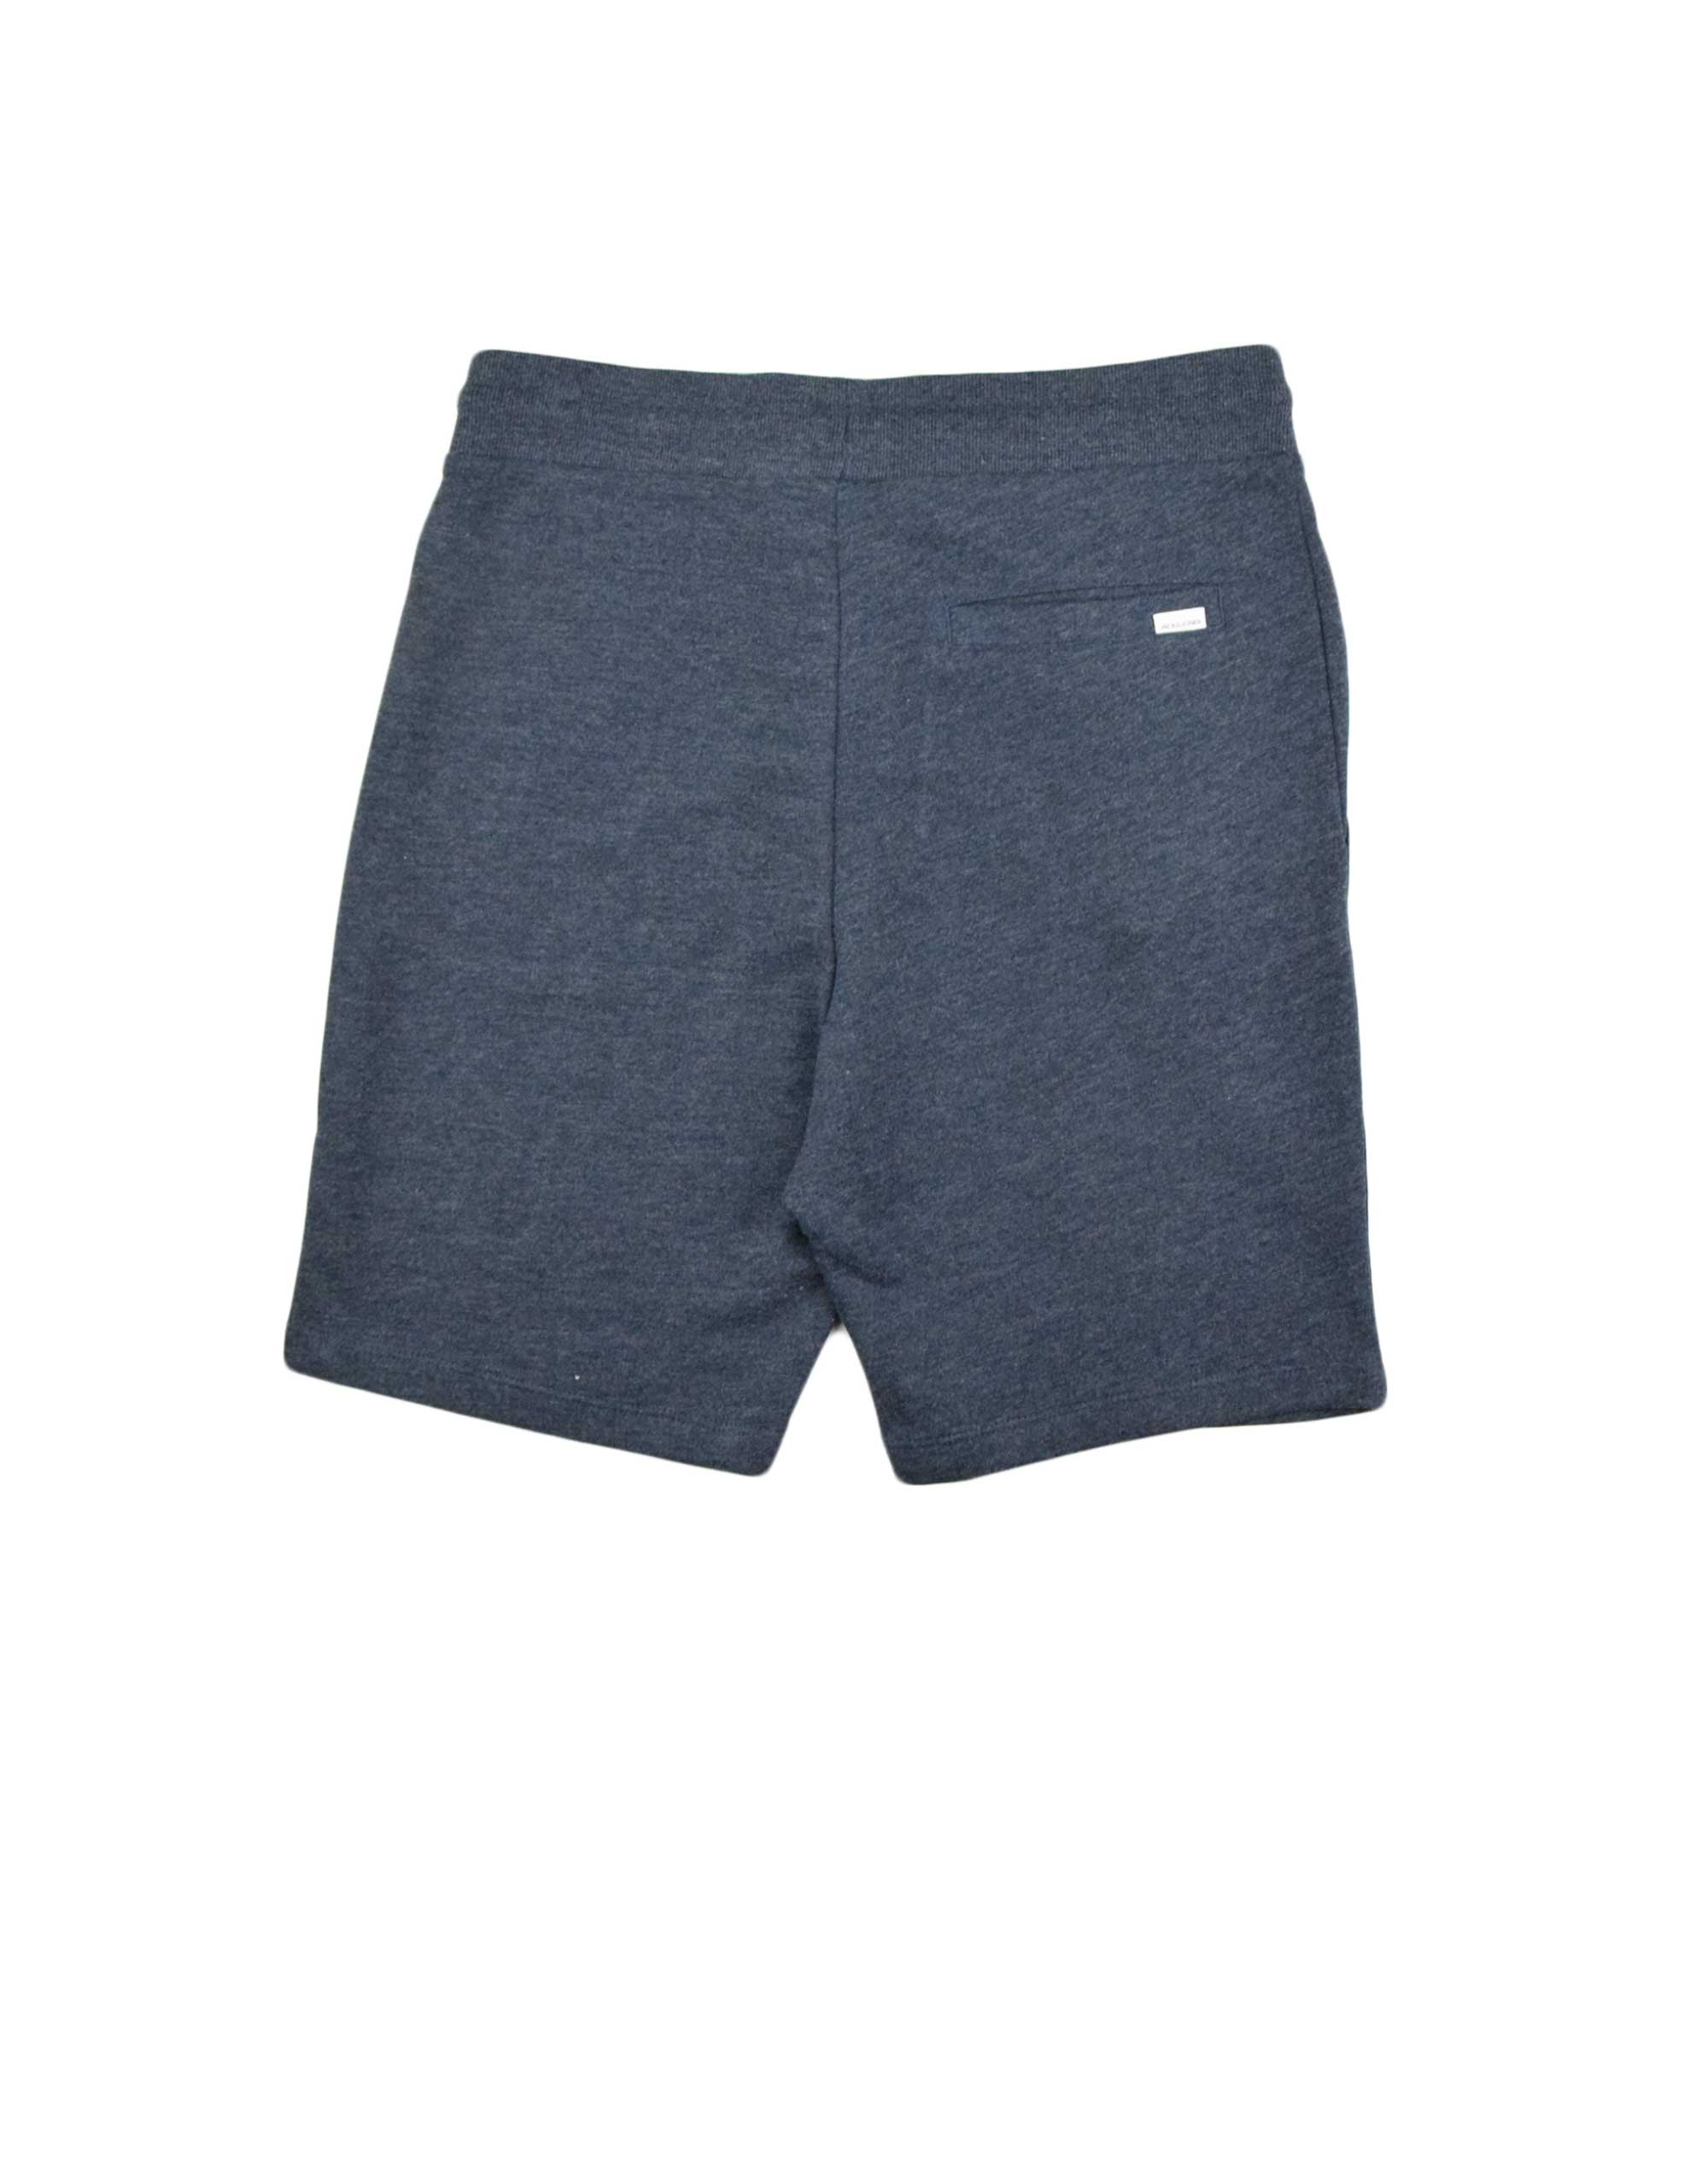 Jack & Jones Shark Sweat Short (12174129) Navy Blazer Melange